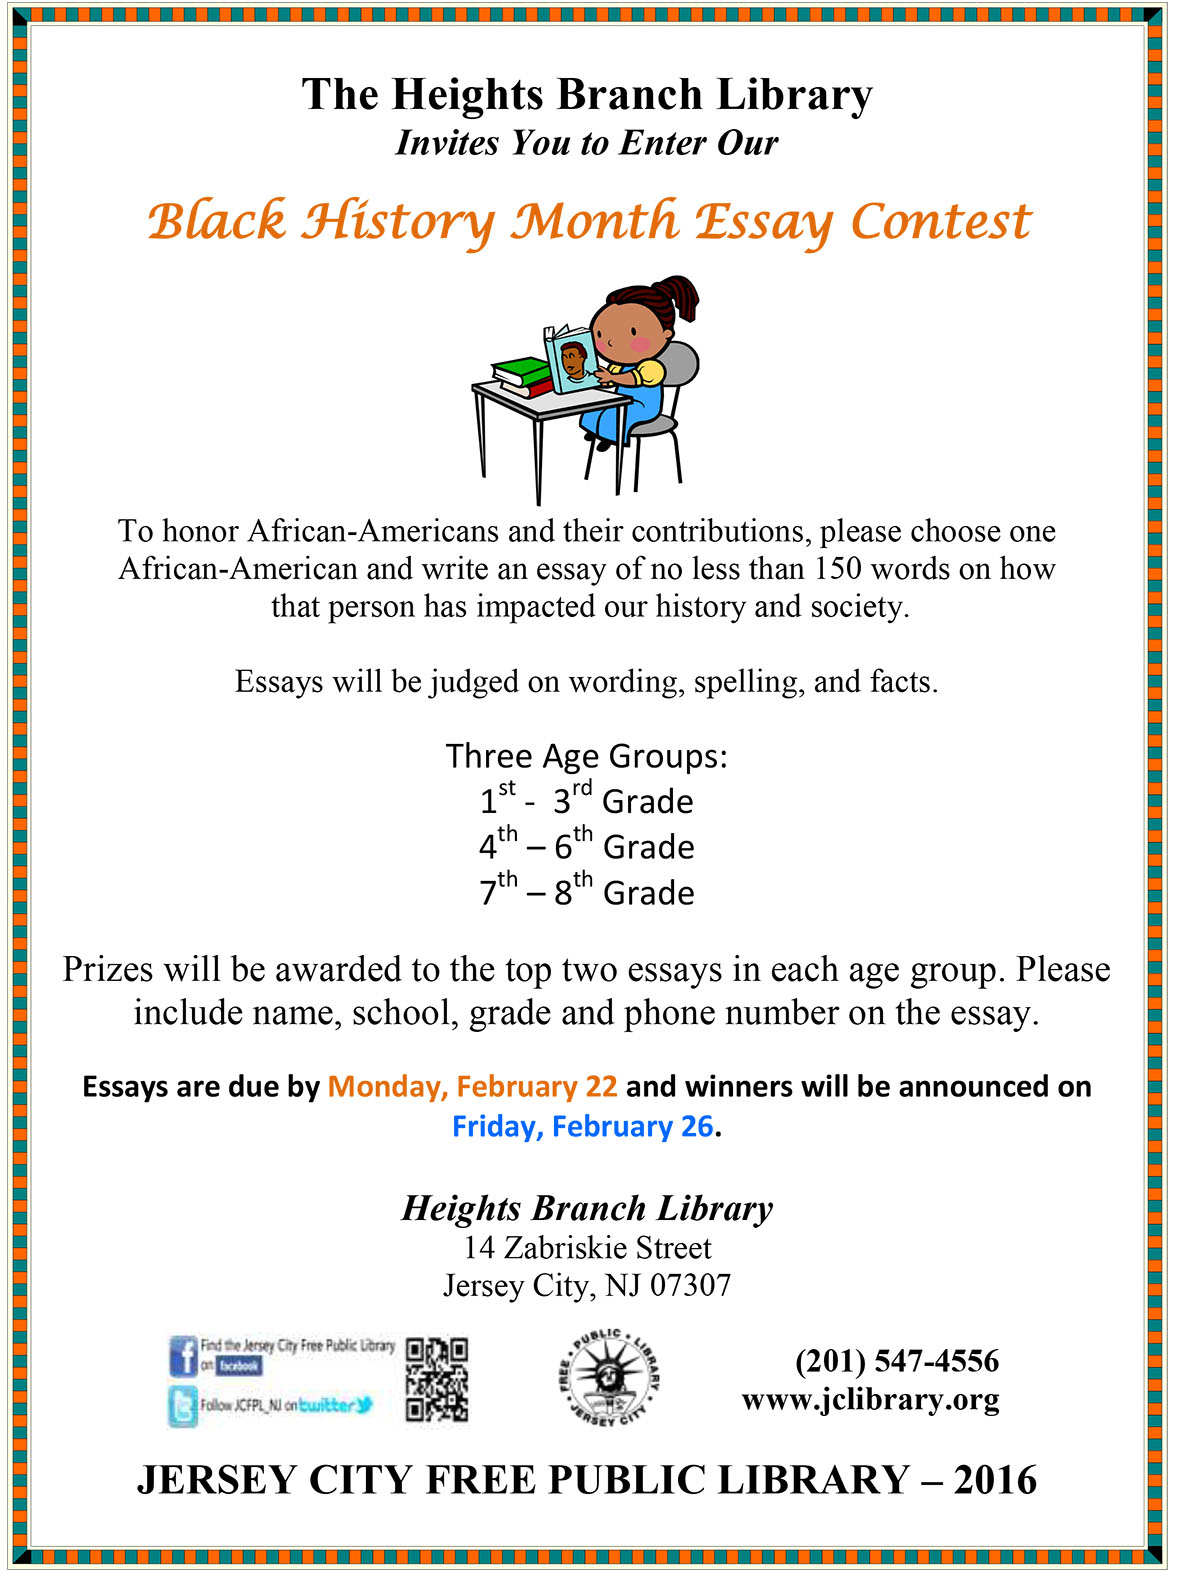 Essay On Malaria Black History Month Essay Contest The Office Of Cultural Affairs Event  Navigation Against Death Penalty Essays also Essay On Mother In Urdu Cultural Essays Black History Month Essay Contest The Office Of  Descriptive Essay On My Best Friend